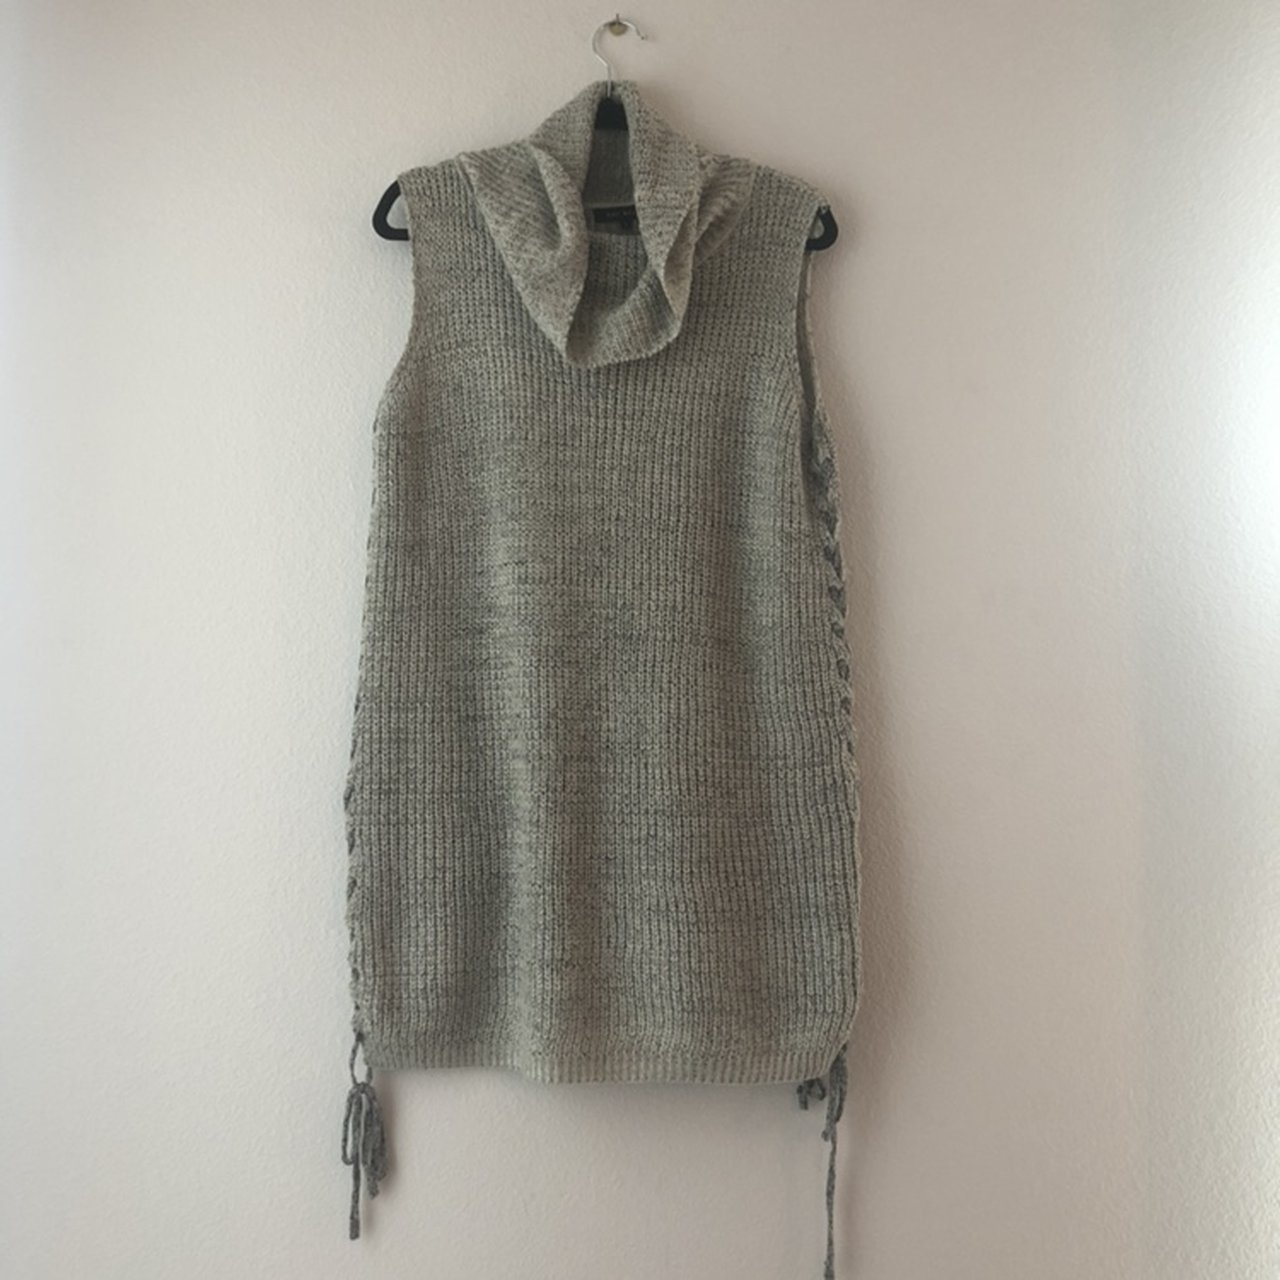 8f930df3de Light grey knit turtleneck   cowl neck sleeveless sweater on - Depop